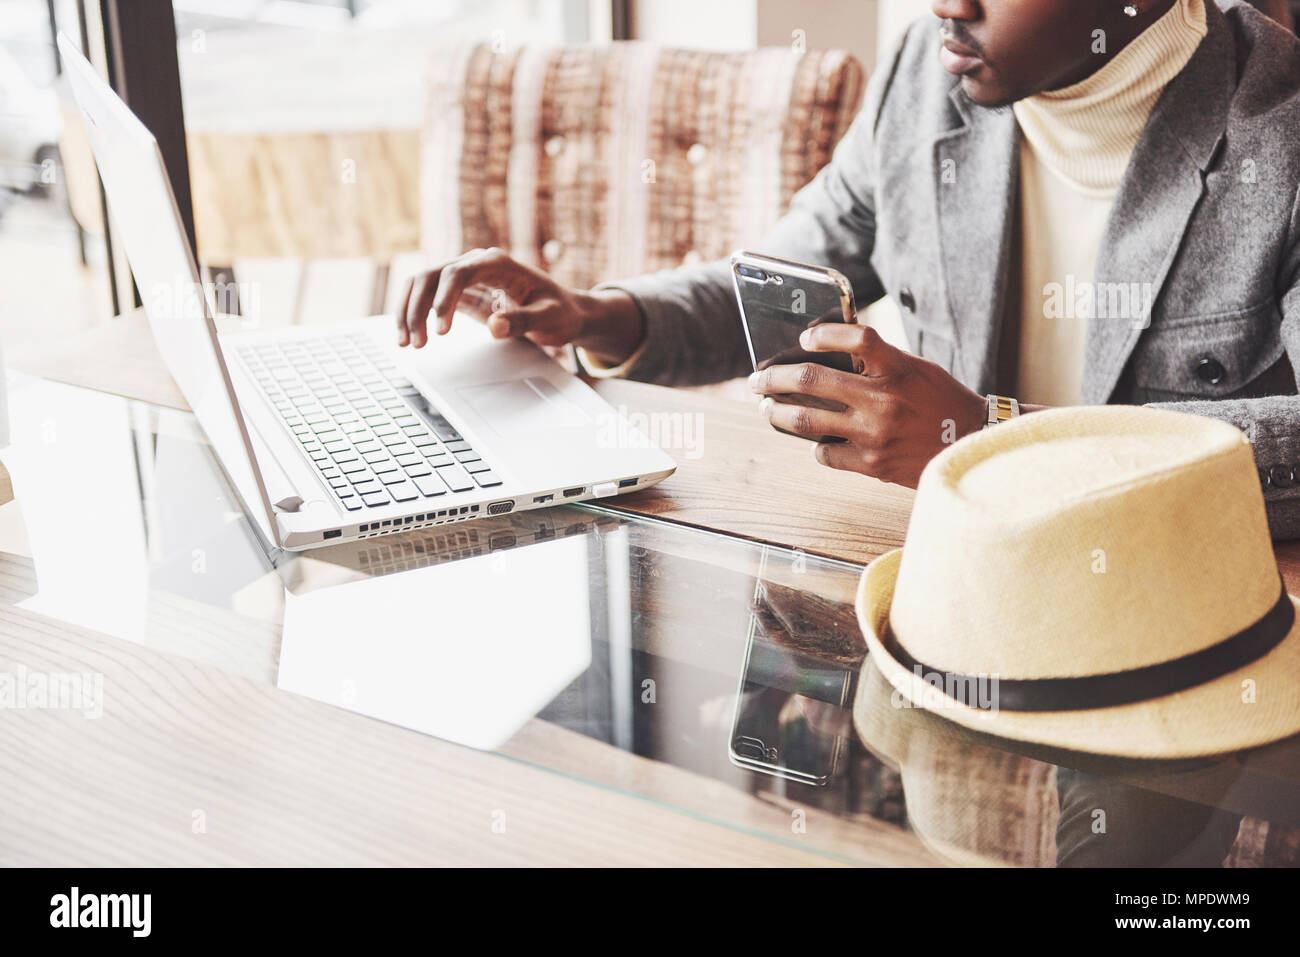 Pensive afro american handsome professional writer of popular articles in blog dressed in trendy outfit and glasses thinking over new story proofreading his script from notebook sitting in cafe - Stock Image